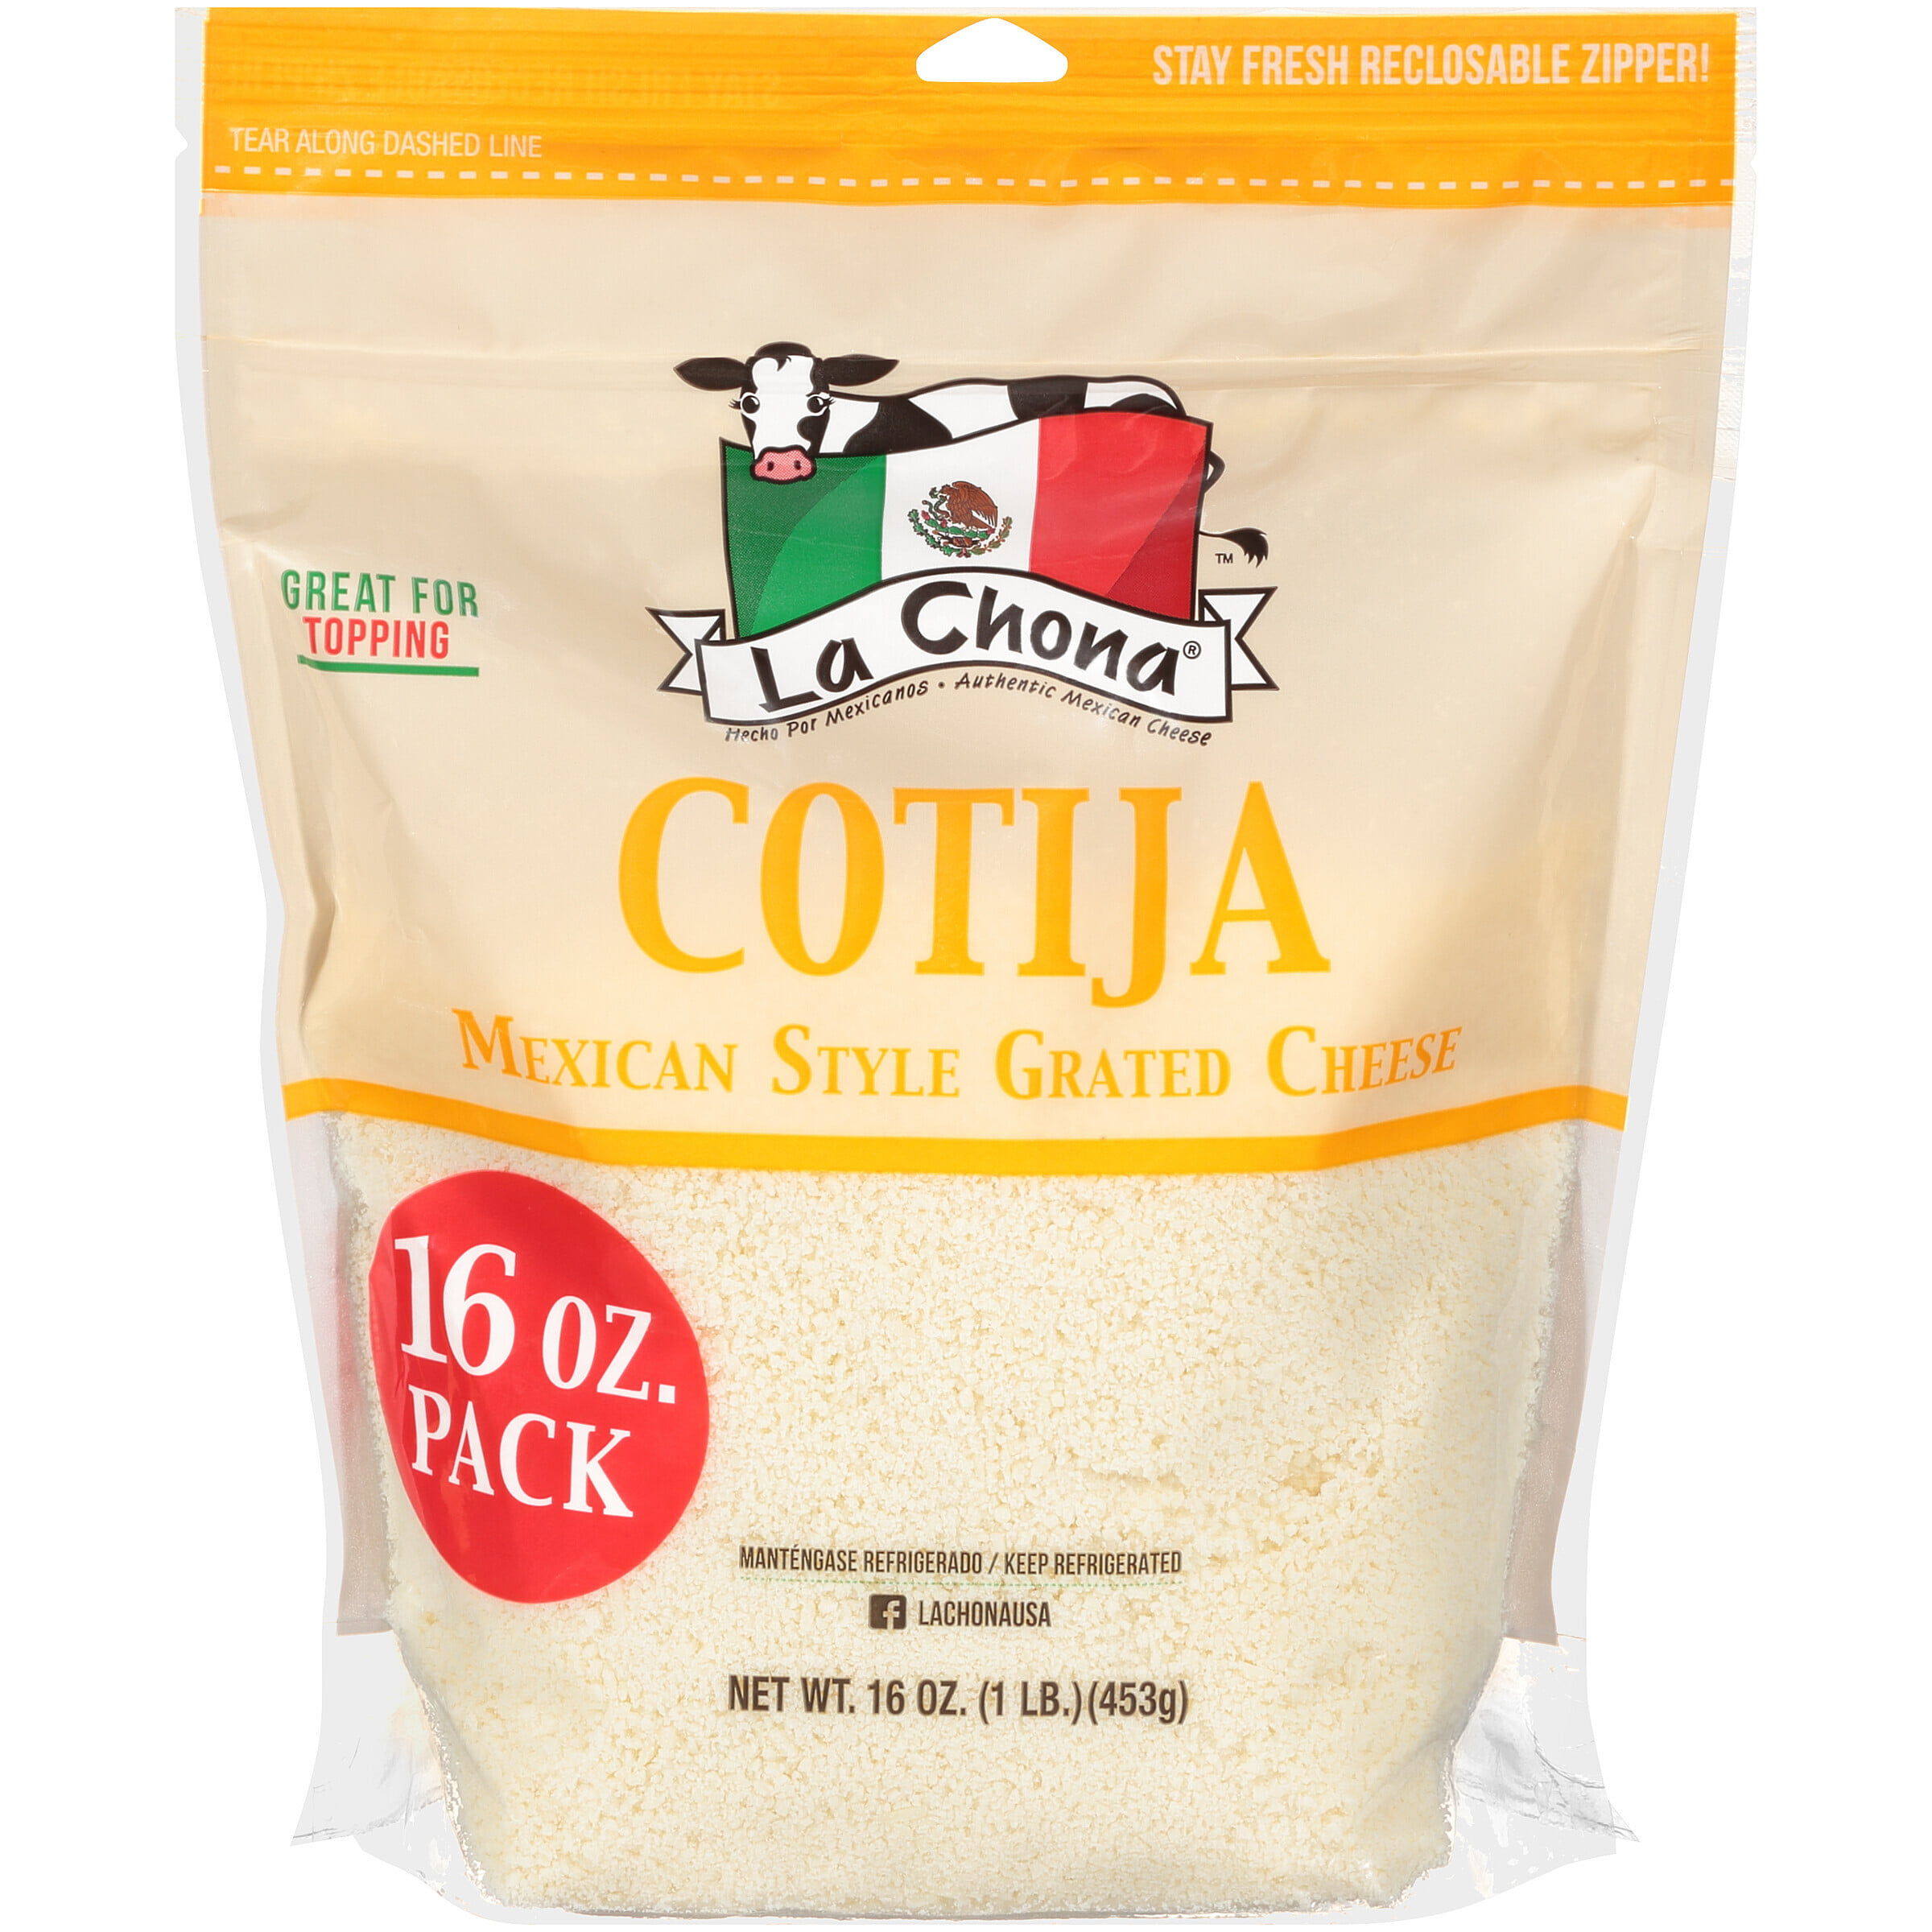 La Chona Cotija Ready To Use Mexican Style Grated Cheese 16 Oz Walmart Com Walmart Com Stream tracks and playlists from la.chona on your desktop or mobile device. la chona cotija ready to use mexican style grated cheese 16 oz walmart com